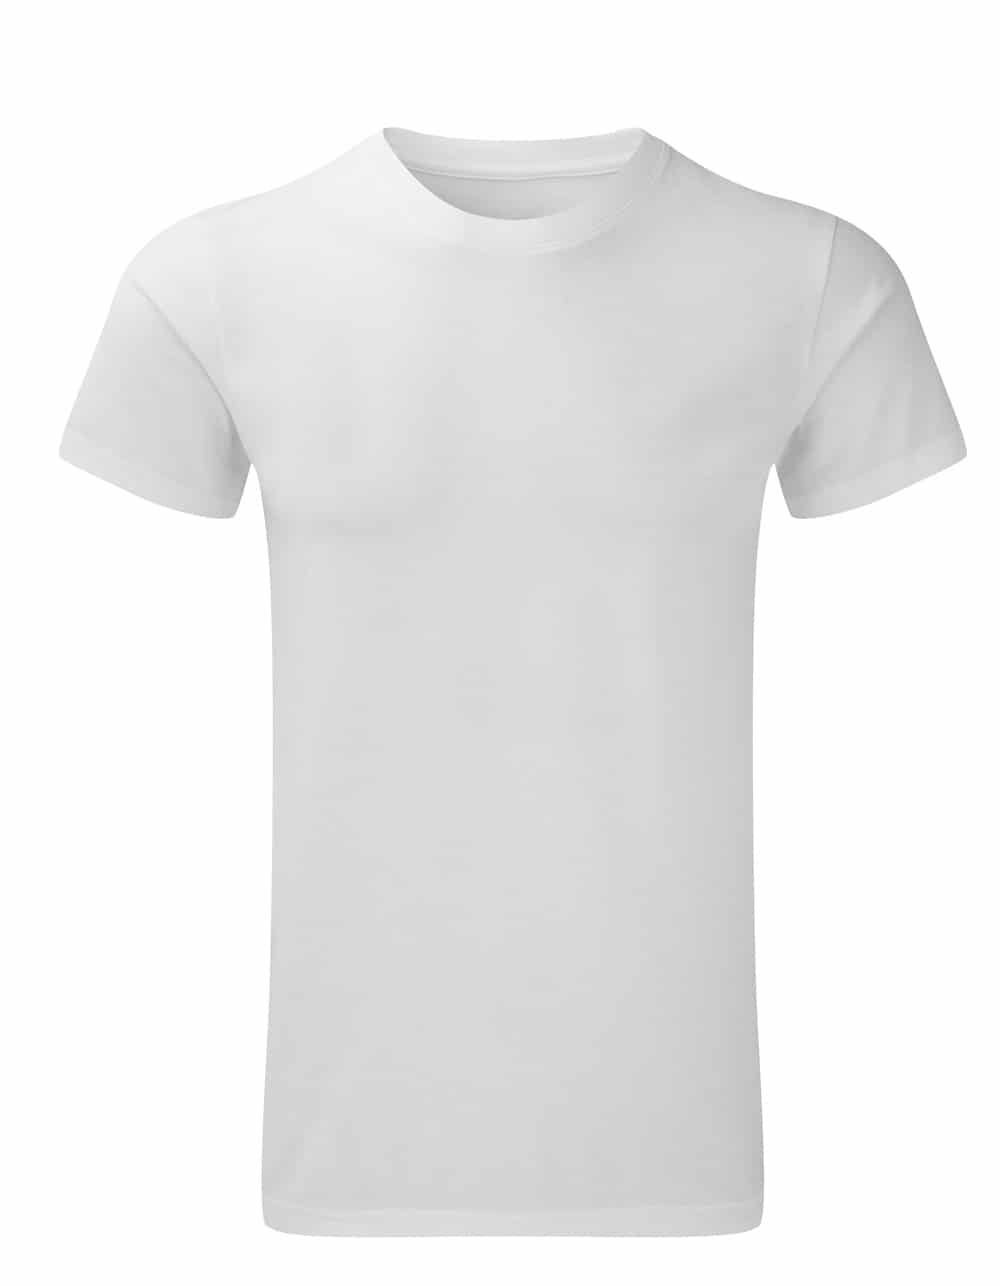 T-ACTIVE-H-B-XL__IMG__HD__T-Shirt20Polyester20Homme20Taille20XL__1__1.jpg